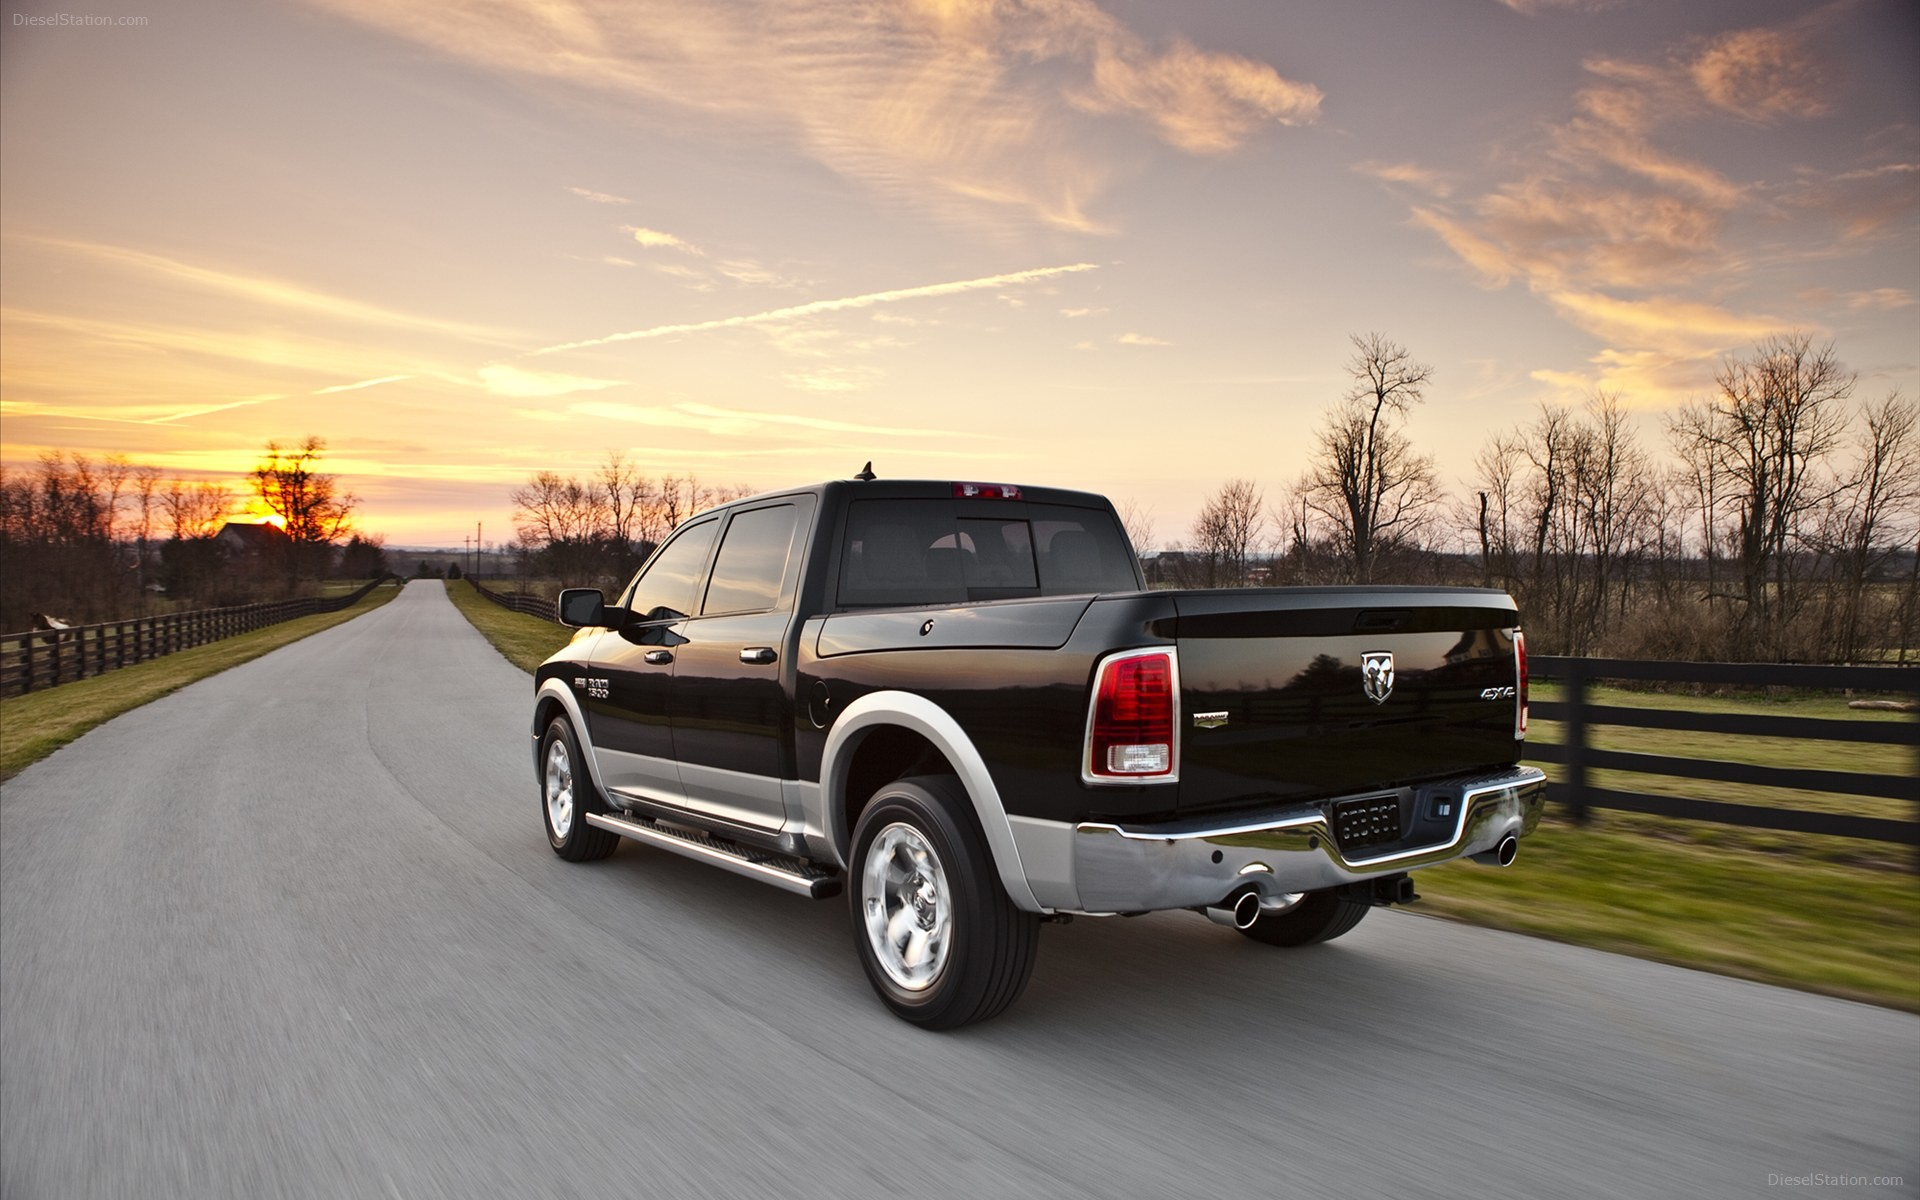 1920x1200 Dodge Ram 1500, Night Package, 2017, tuning, SUVs, pickups, red dodge |  Cars Wallpapers | Pinterest | Dodge ram 1500, Dodge rams and Dodge